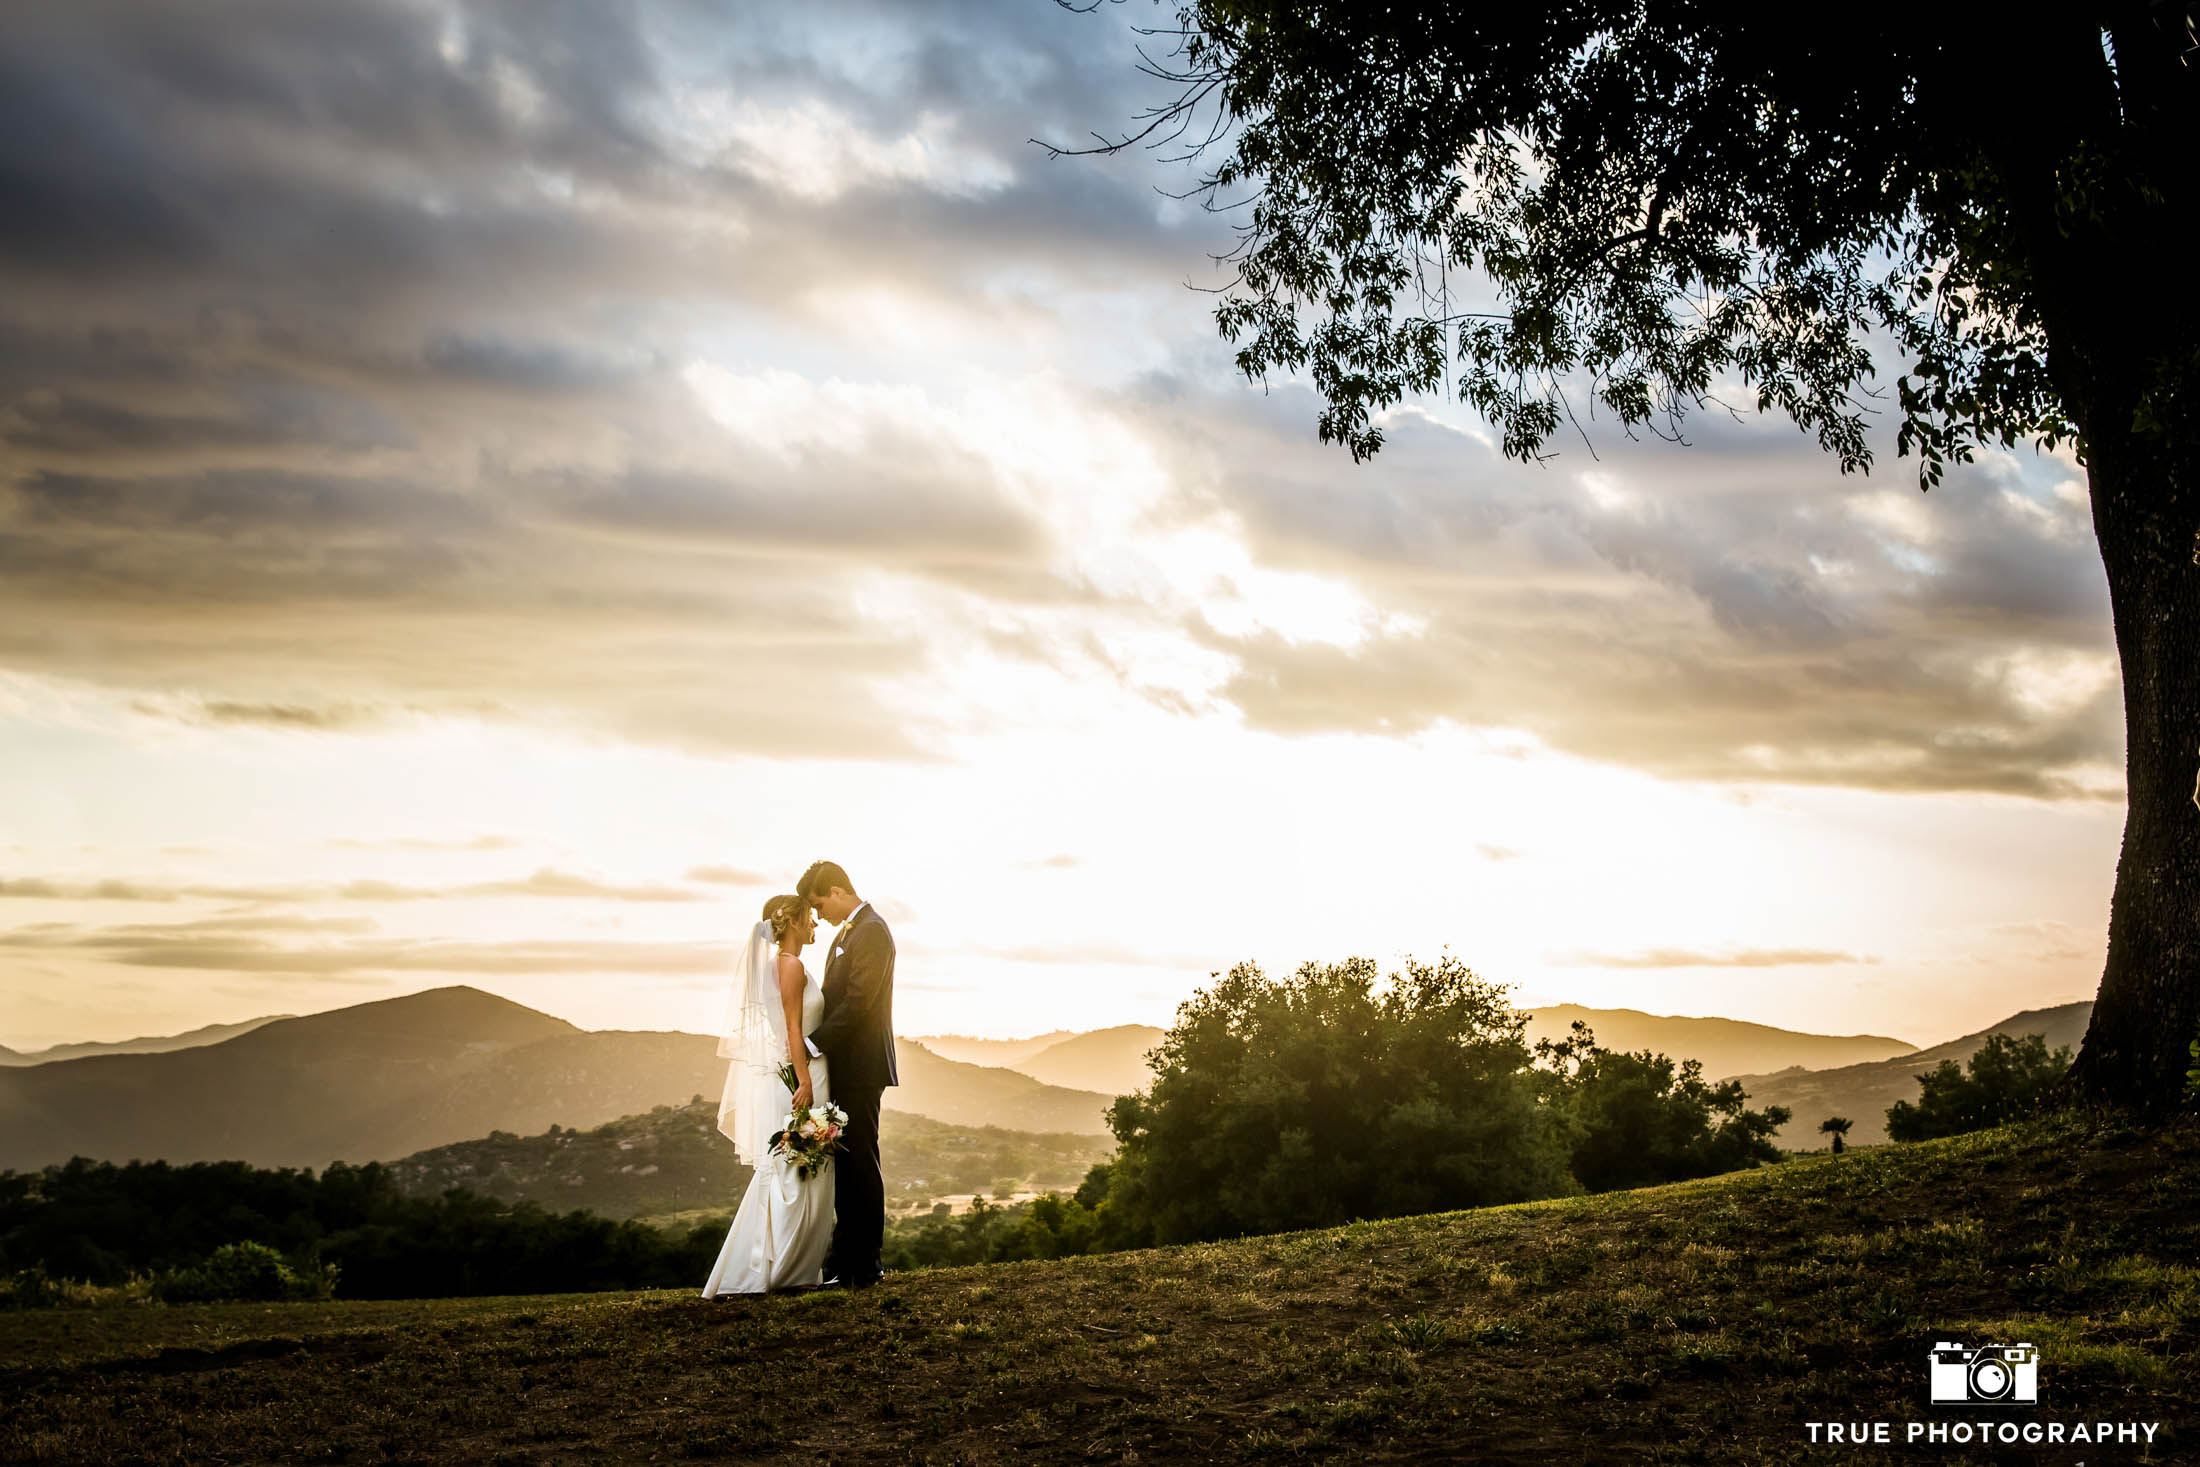 Bride and Groom embrace one another after rustic outdoor wedding ceremony during beautiful california sunset on ranch